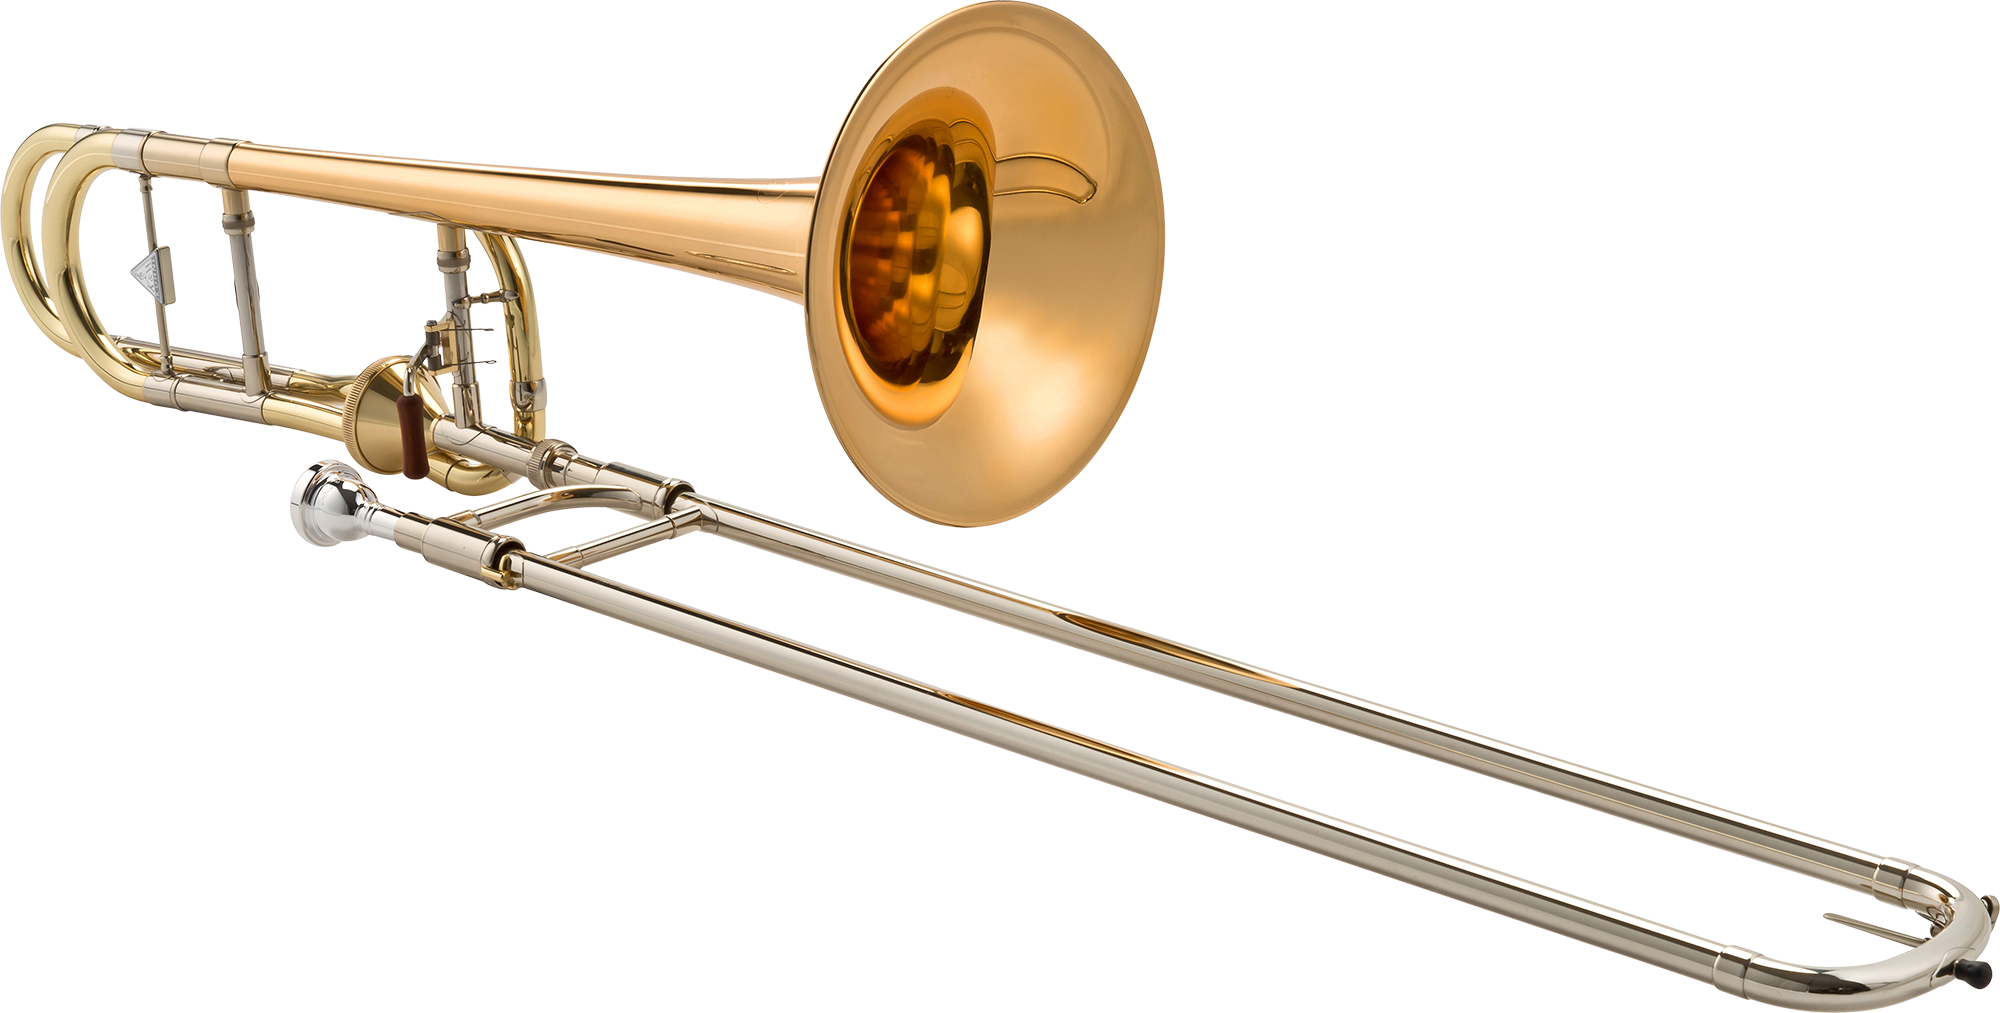 Trombone PNG Image